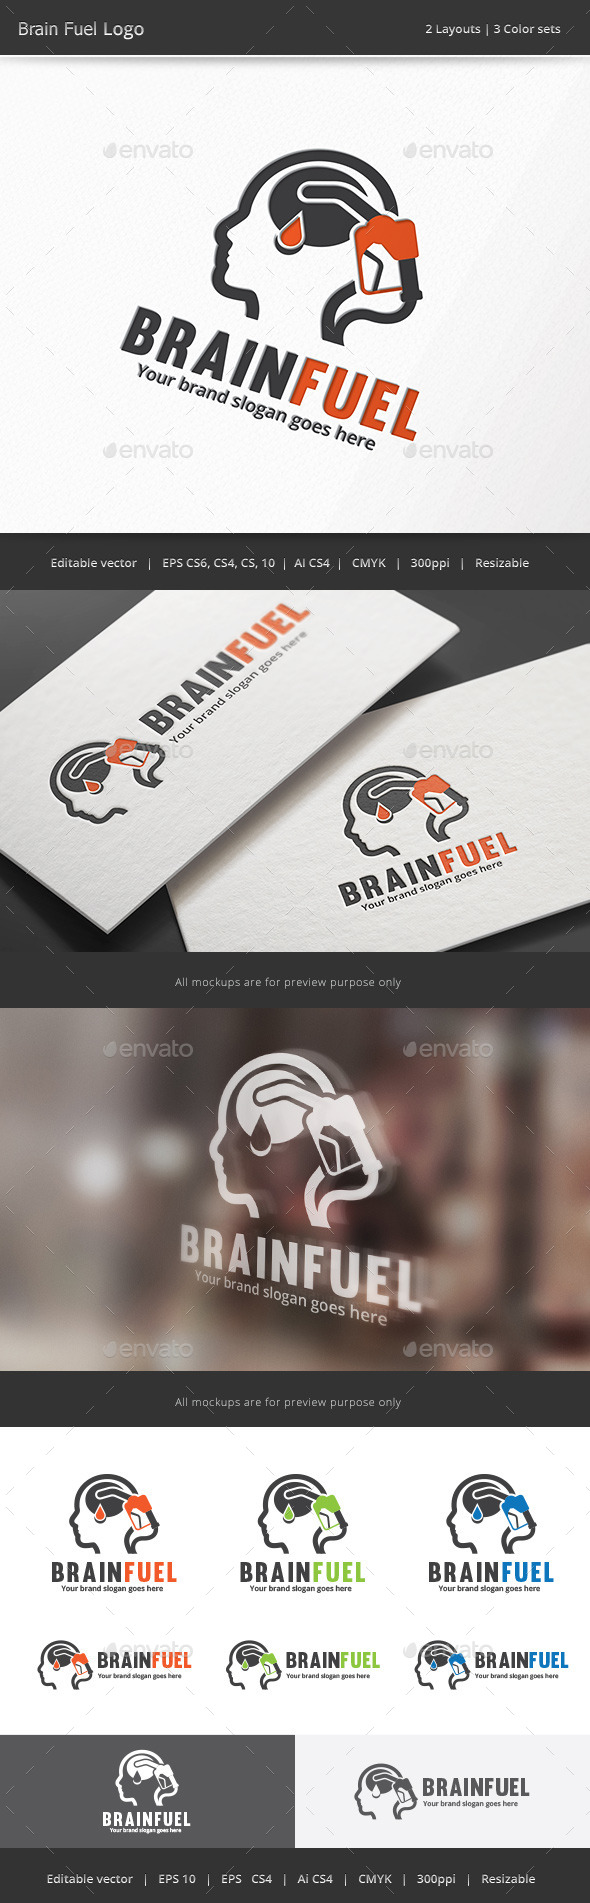 Brain Fuel Logo - Vector Abstract